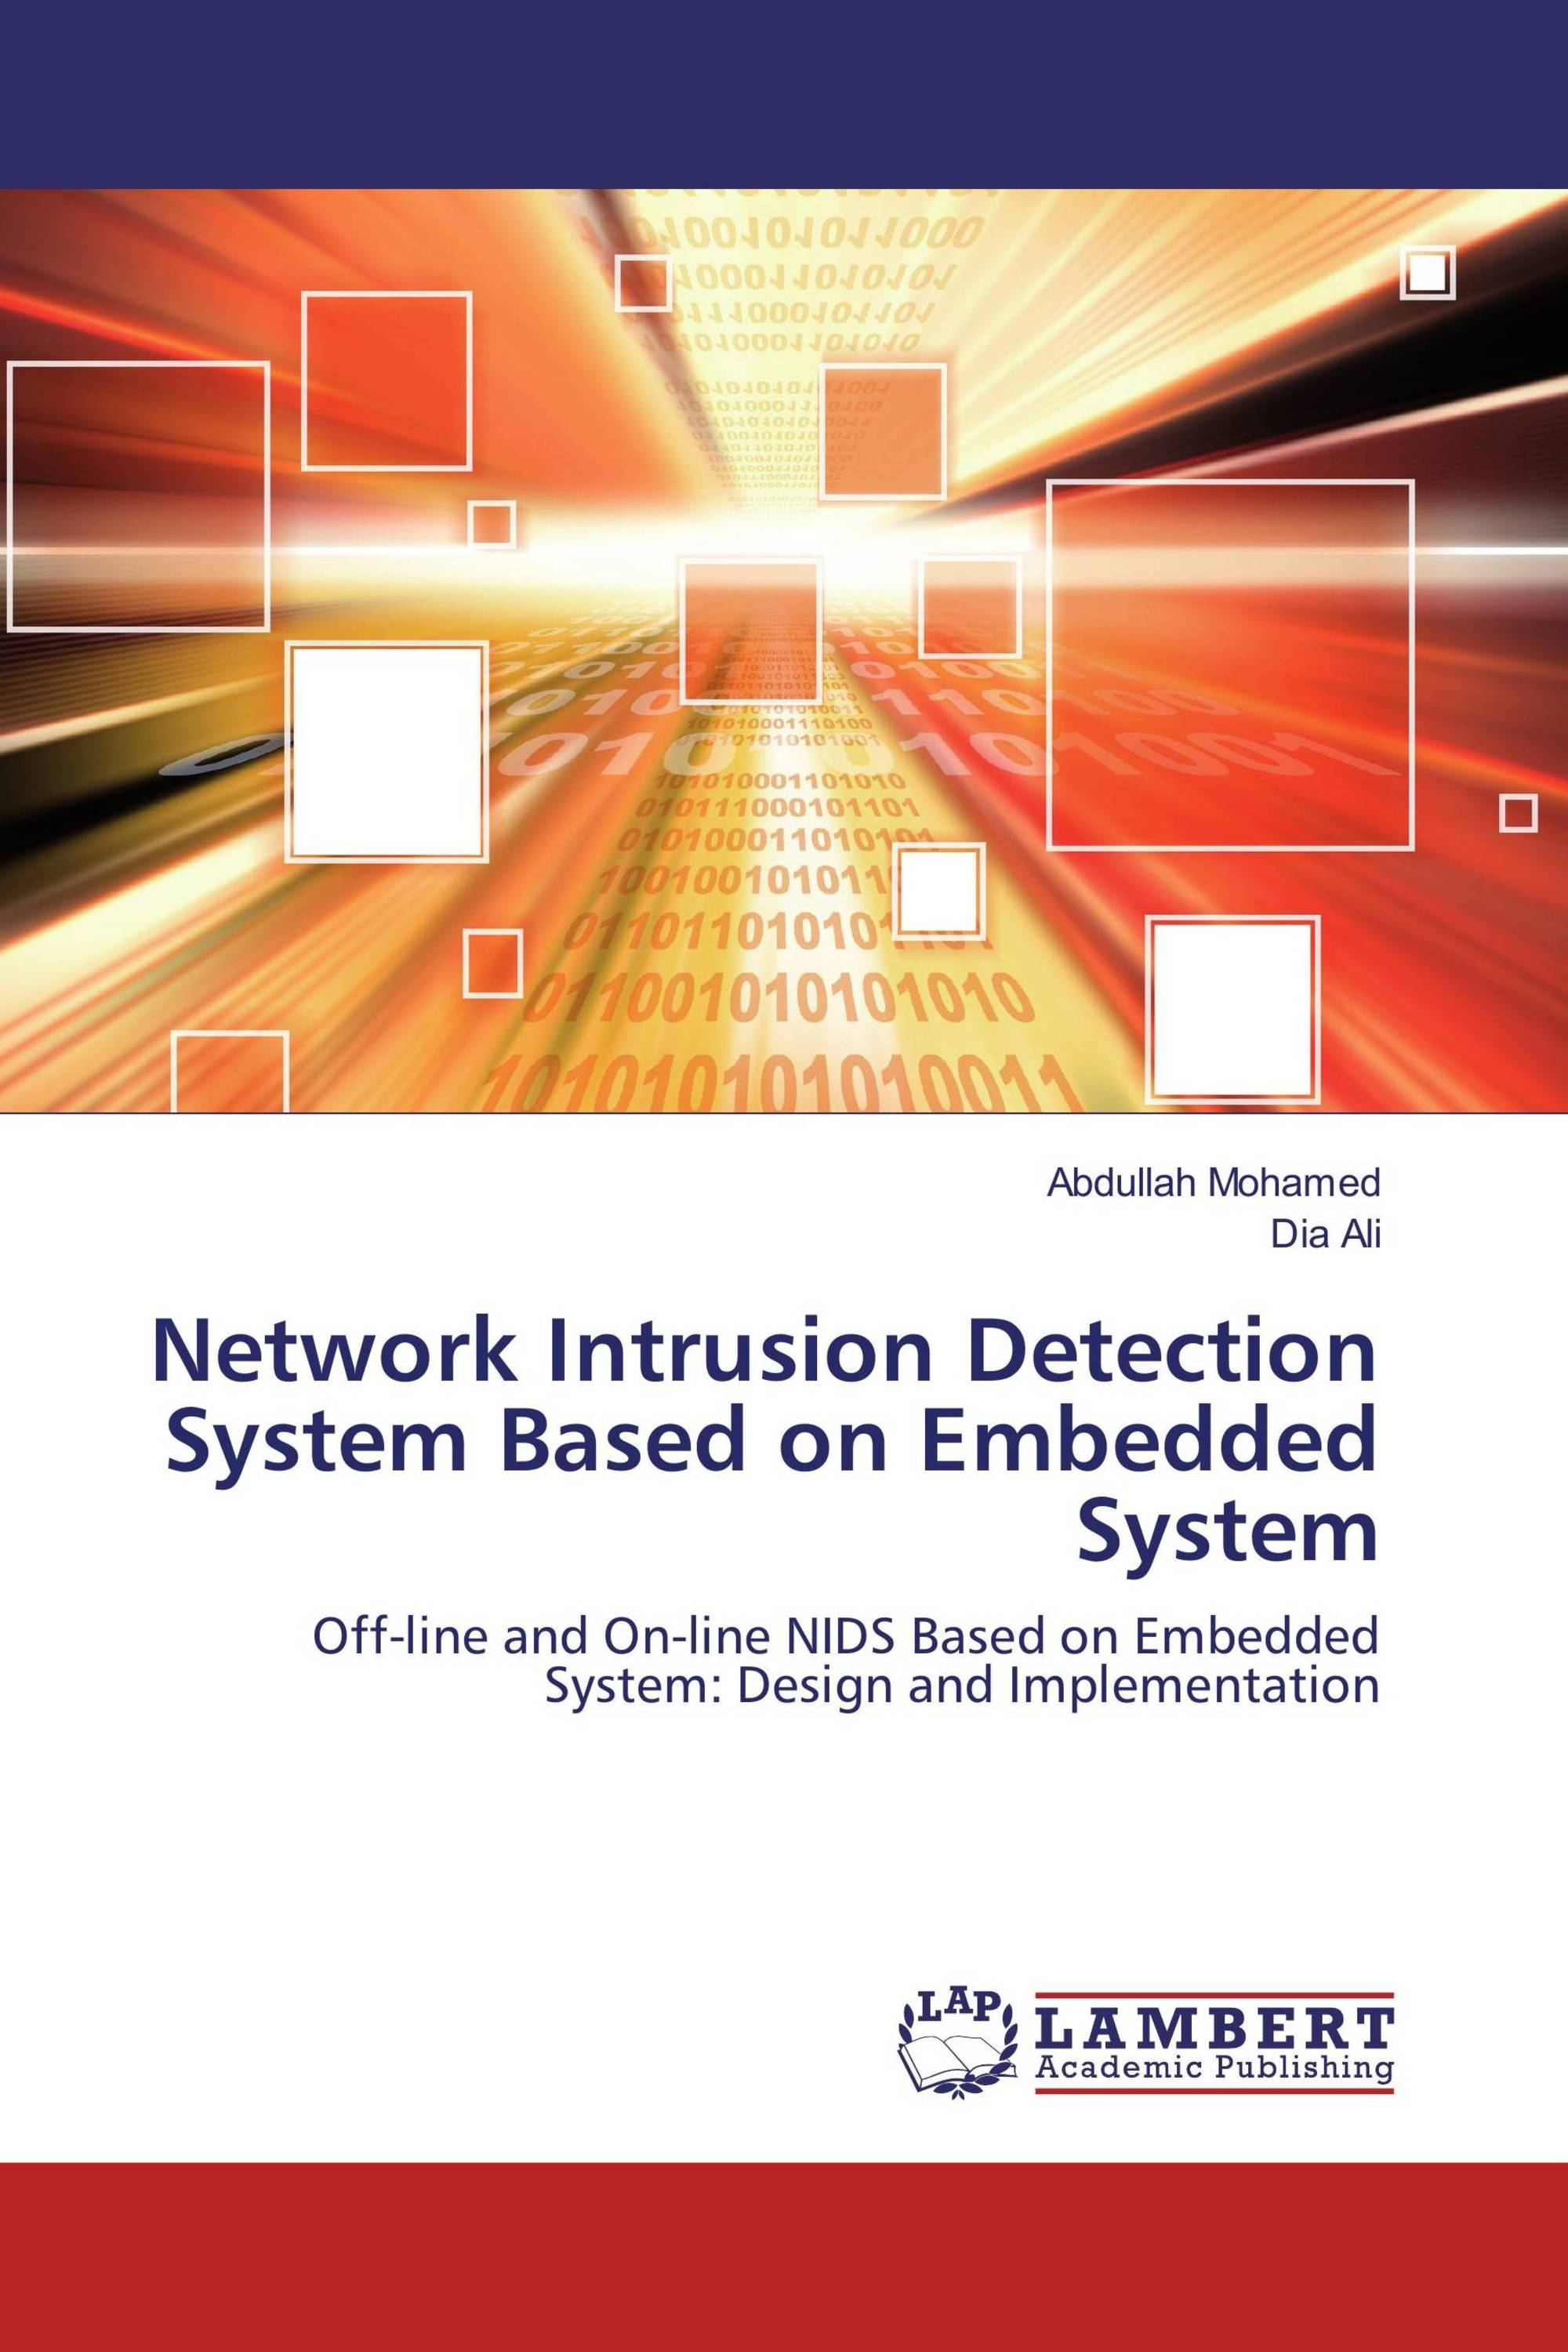 thesis on network intrusion detection The aim of this paper is to propose a multi-agent system for network intrusion  detection  intrusion detection system or ids is software, hardware or  combination of both used to  phd thesis [19] describes lot of heuristic-base  approaches.